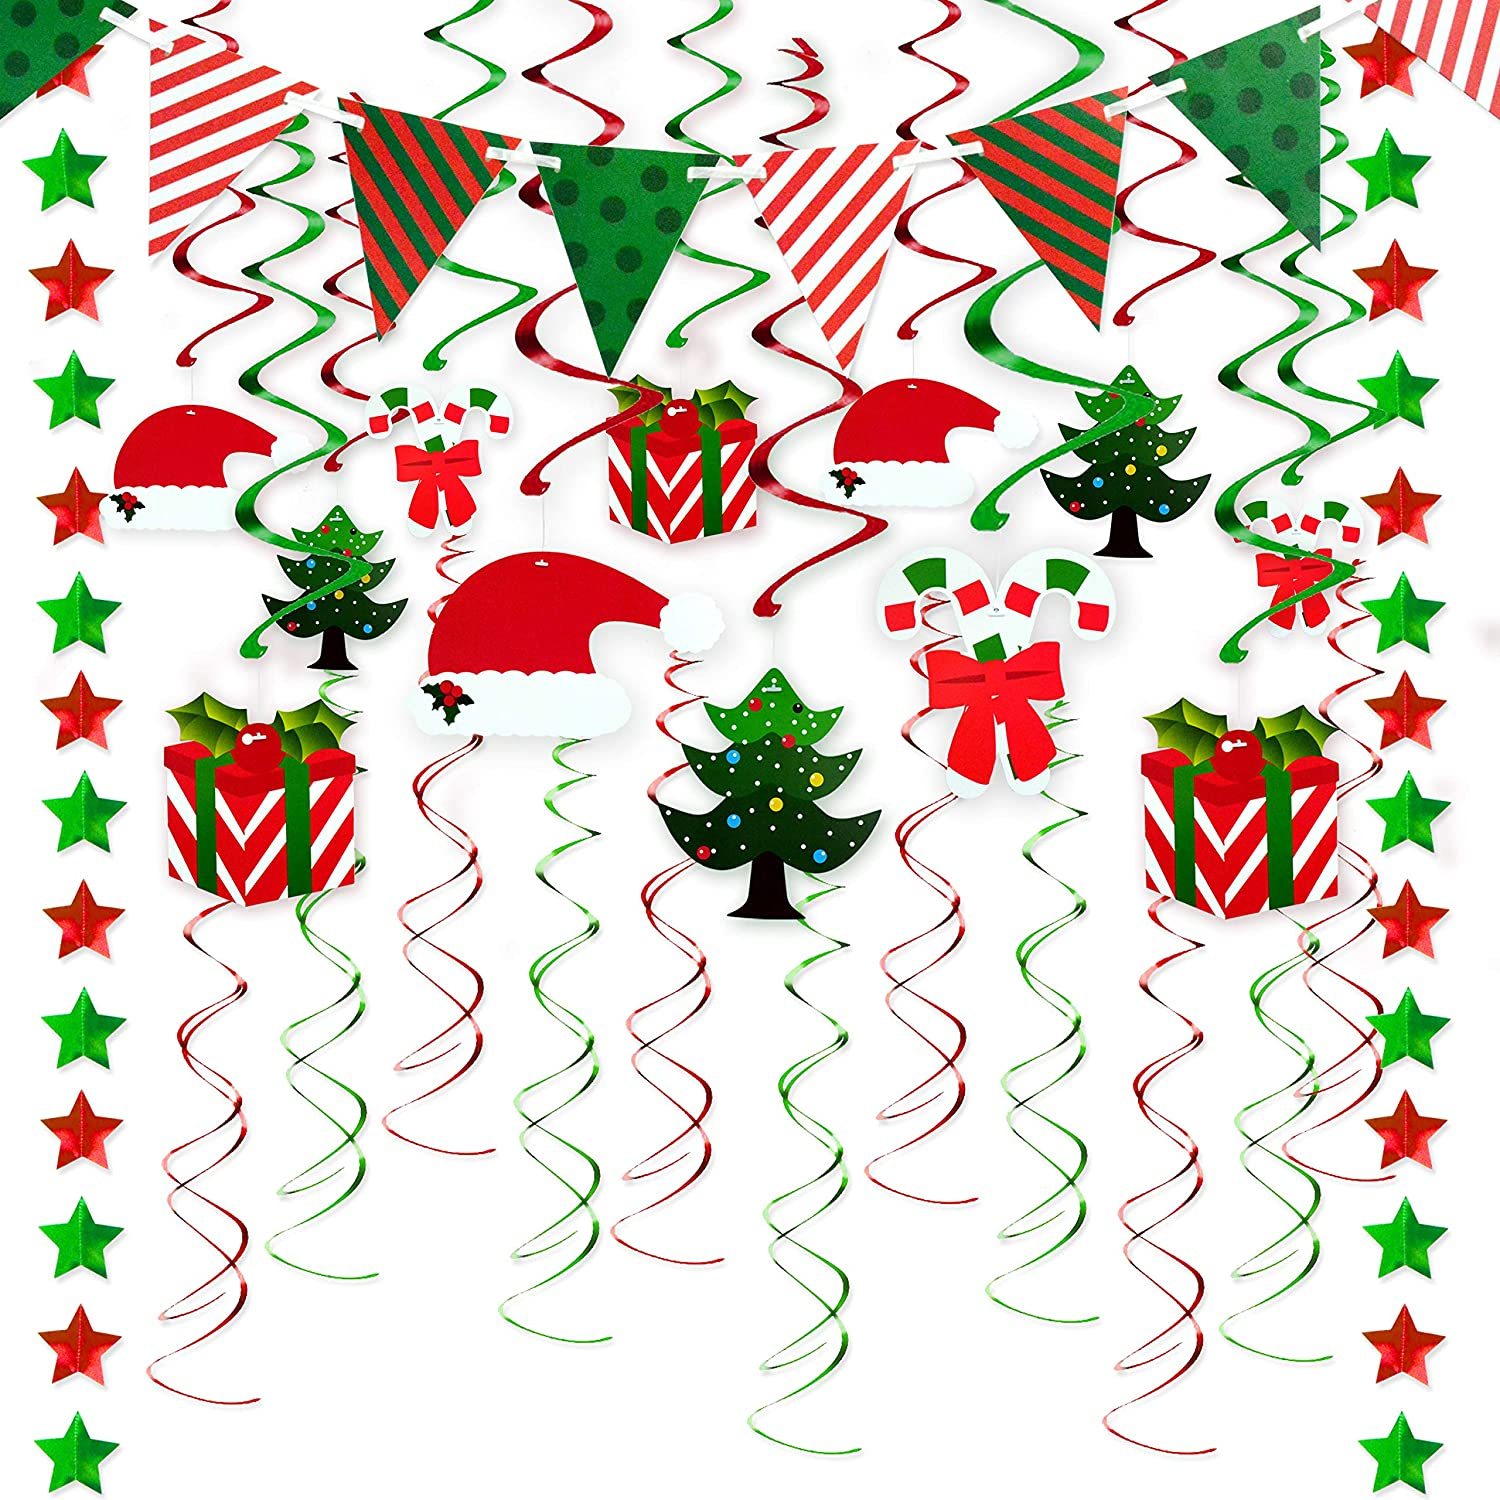 33 Pcs Christmas Swirls Garland Foil Hanging Ceiling Decoration For Christmas Party Supplies Winter Wonderland Holiday Party Supplies With Christmas